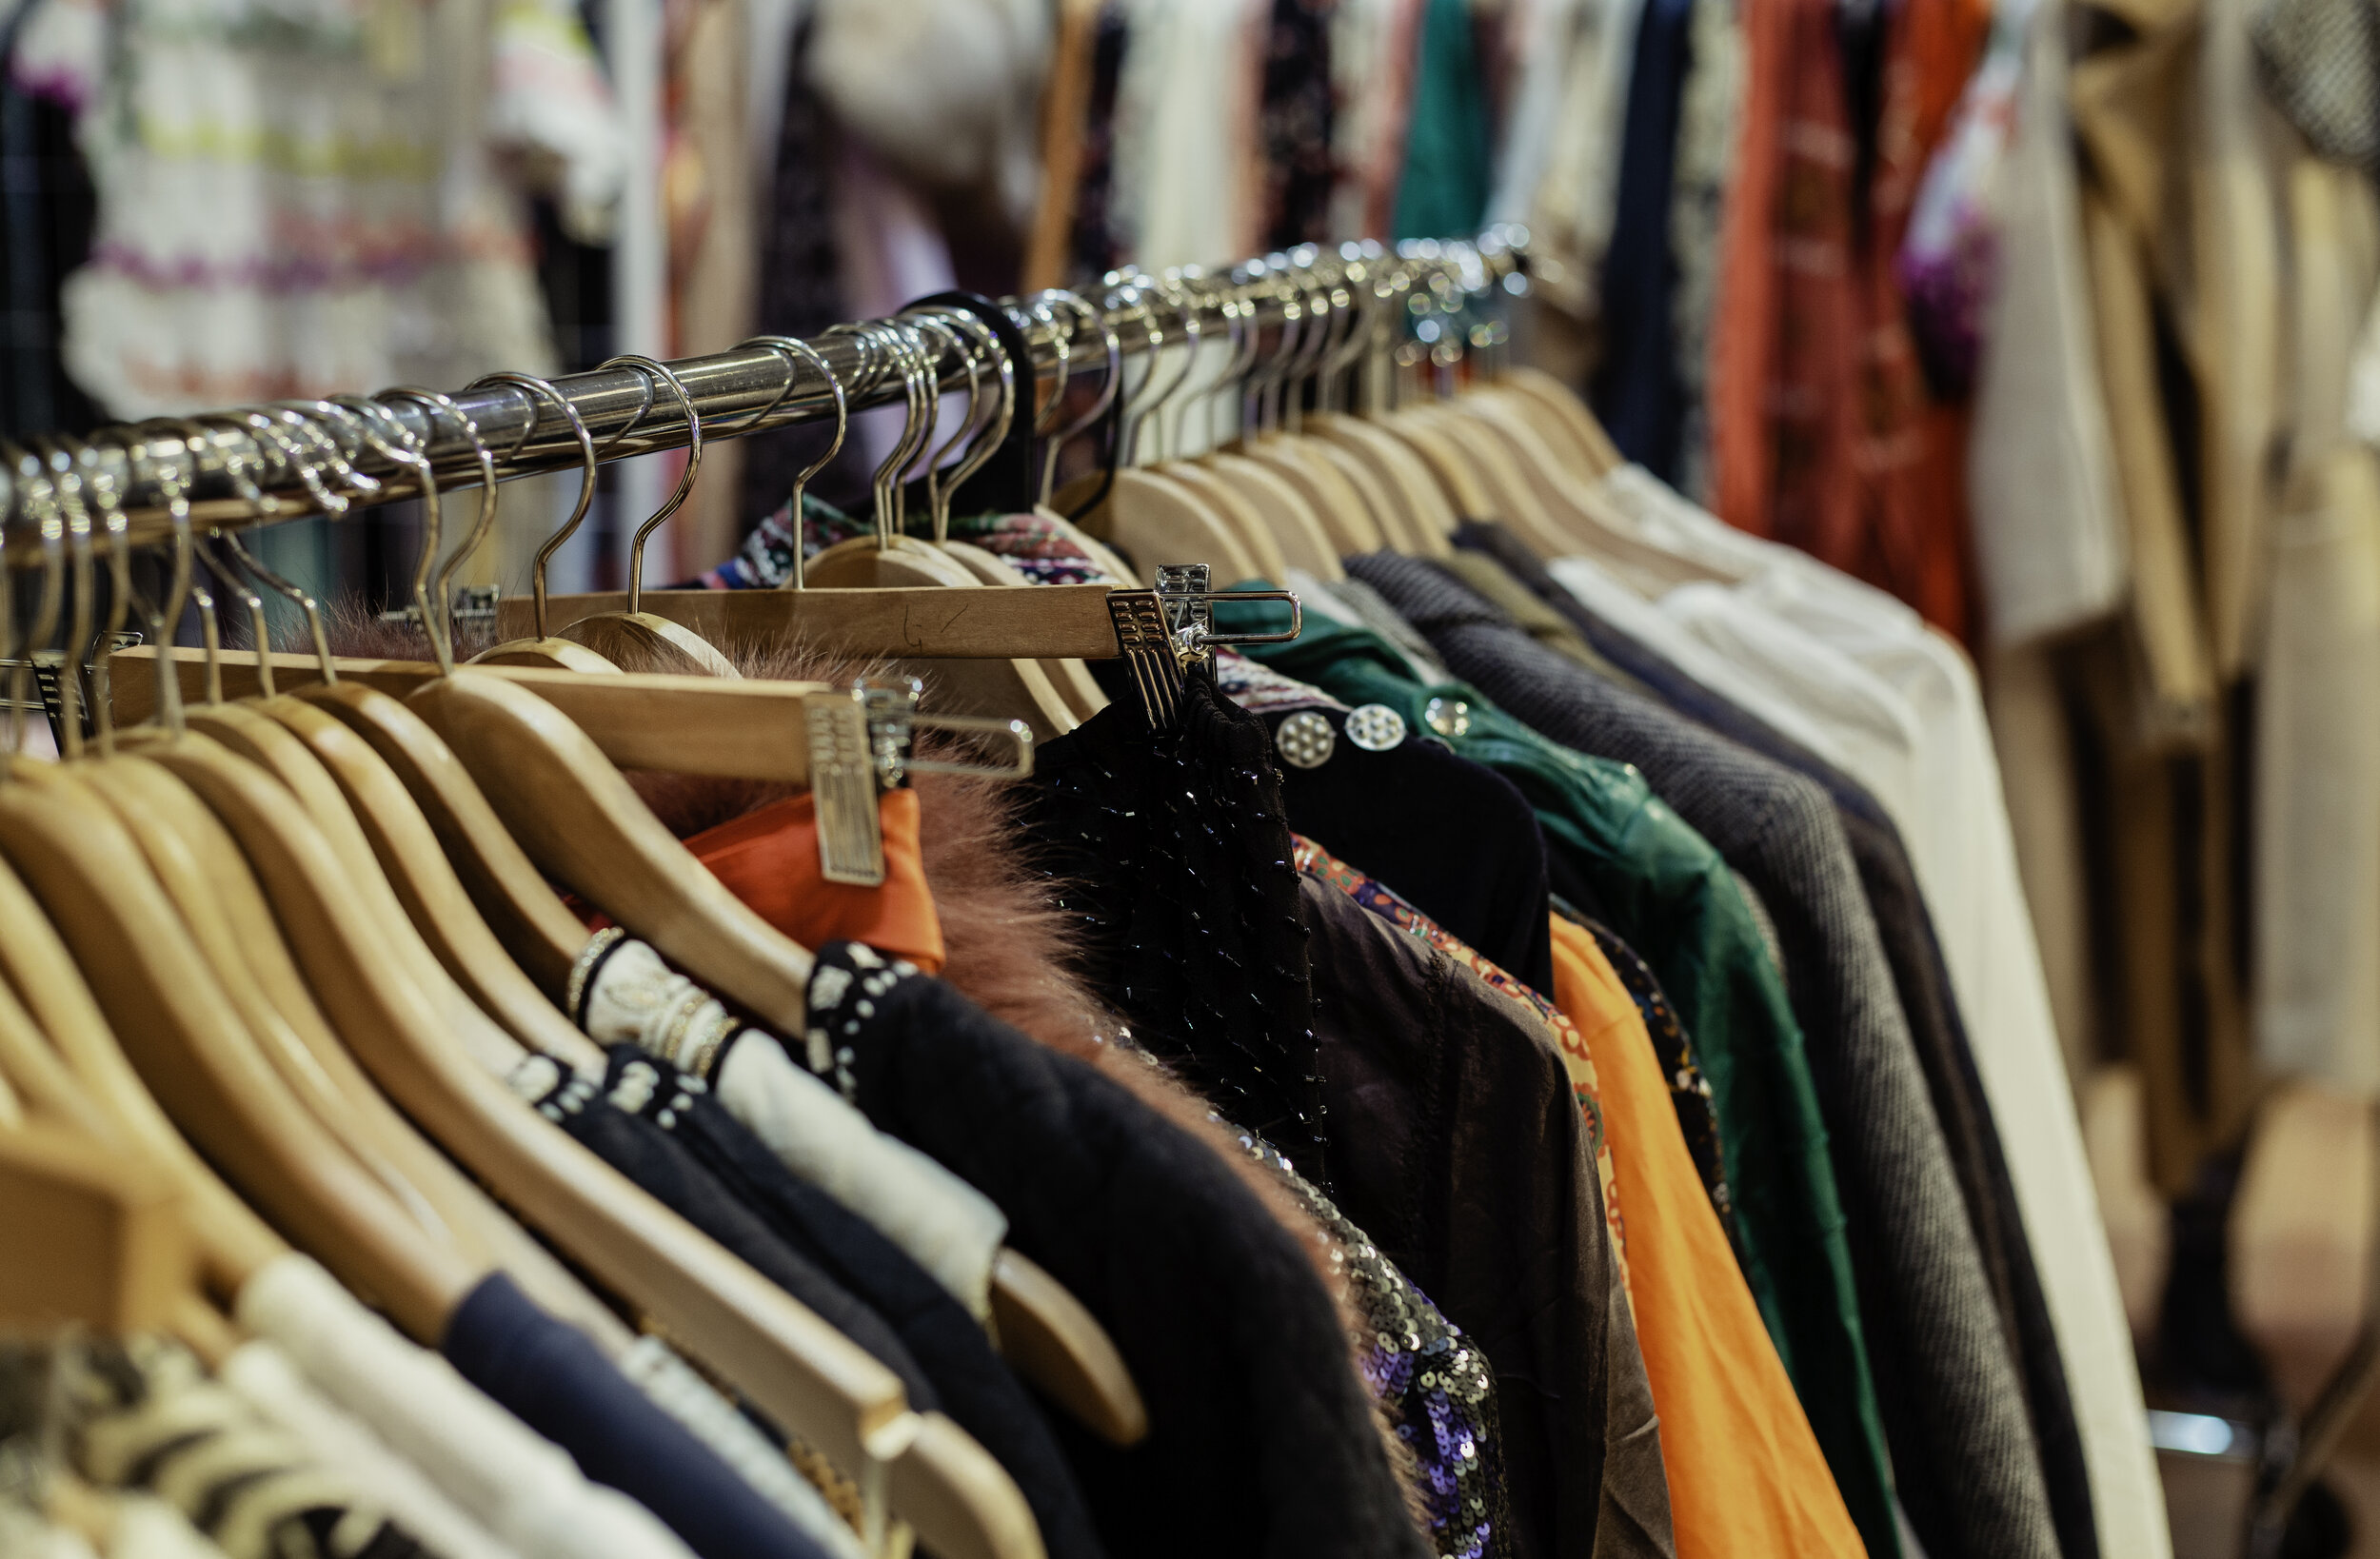 BrookeWaterson_Other_PopUpSale11_2019PhotoComp.jpg